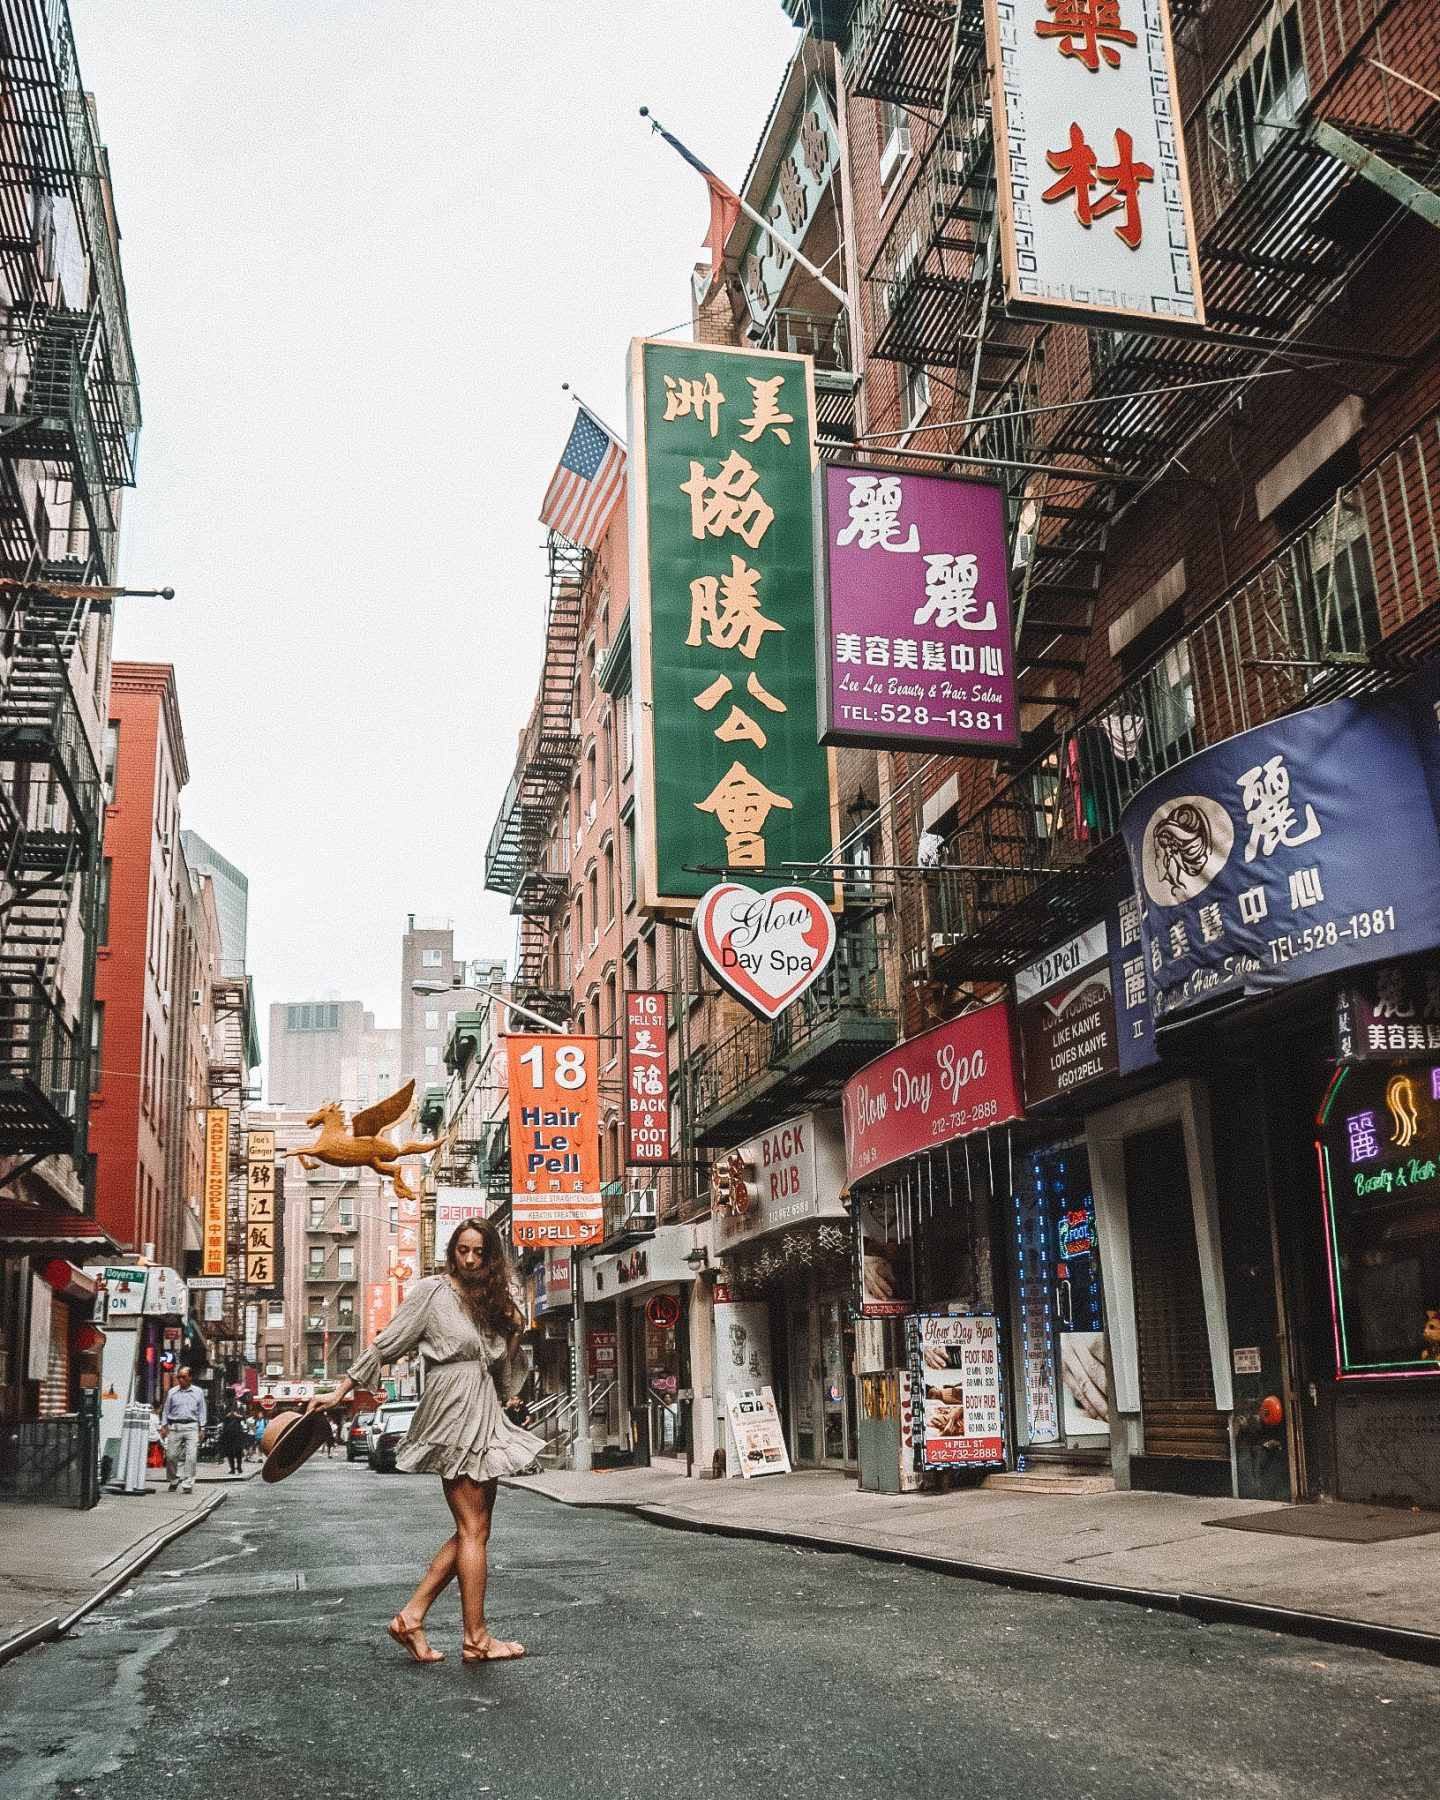 Girl in the street in Chinatown, NY